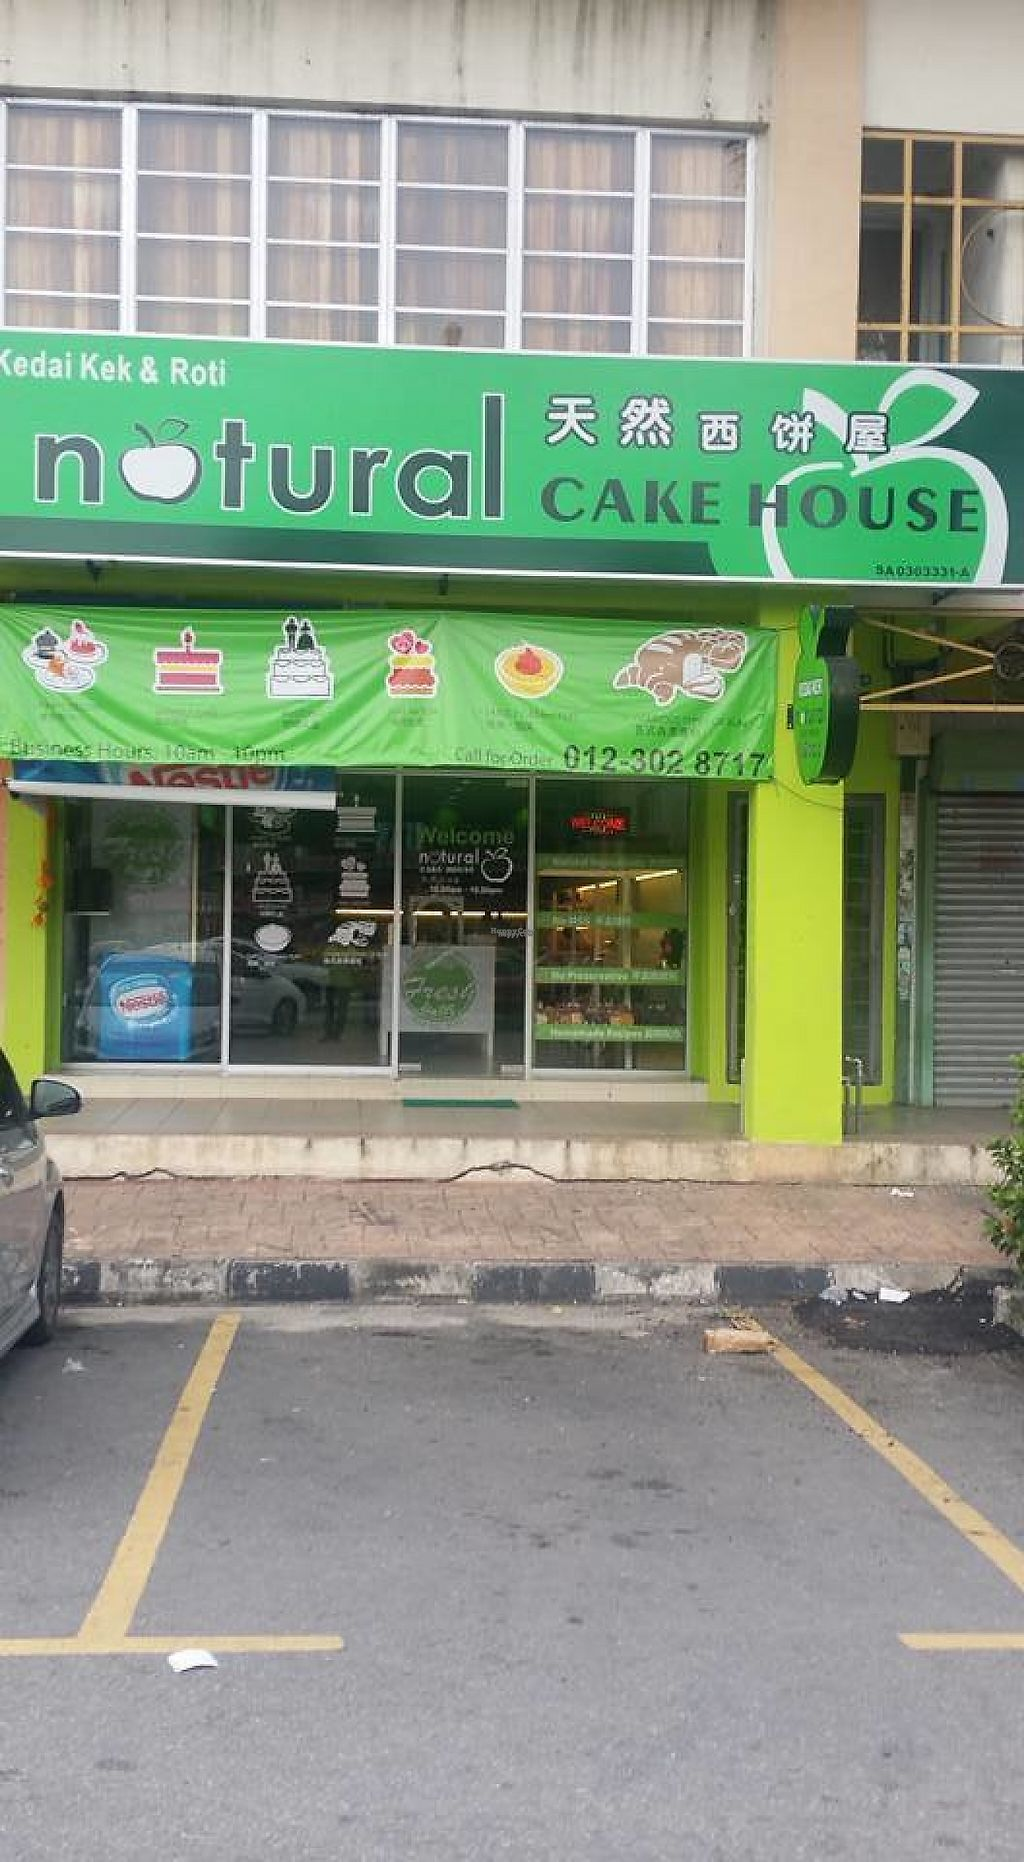 Photo of Natural Cake House  by Raphael_Dane <br/>outside the place <br/> March 20, 2017  - <a href='/contact/abuse/image/88661/238980'>Report</a>